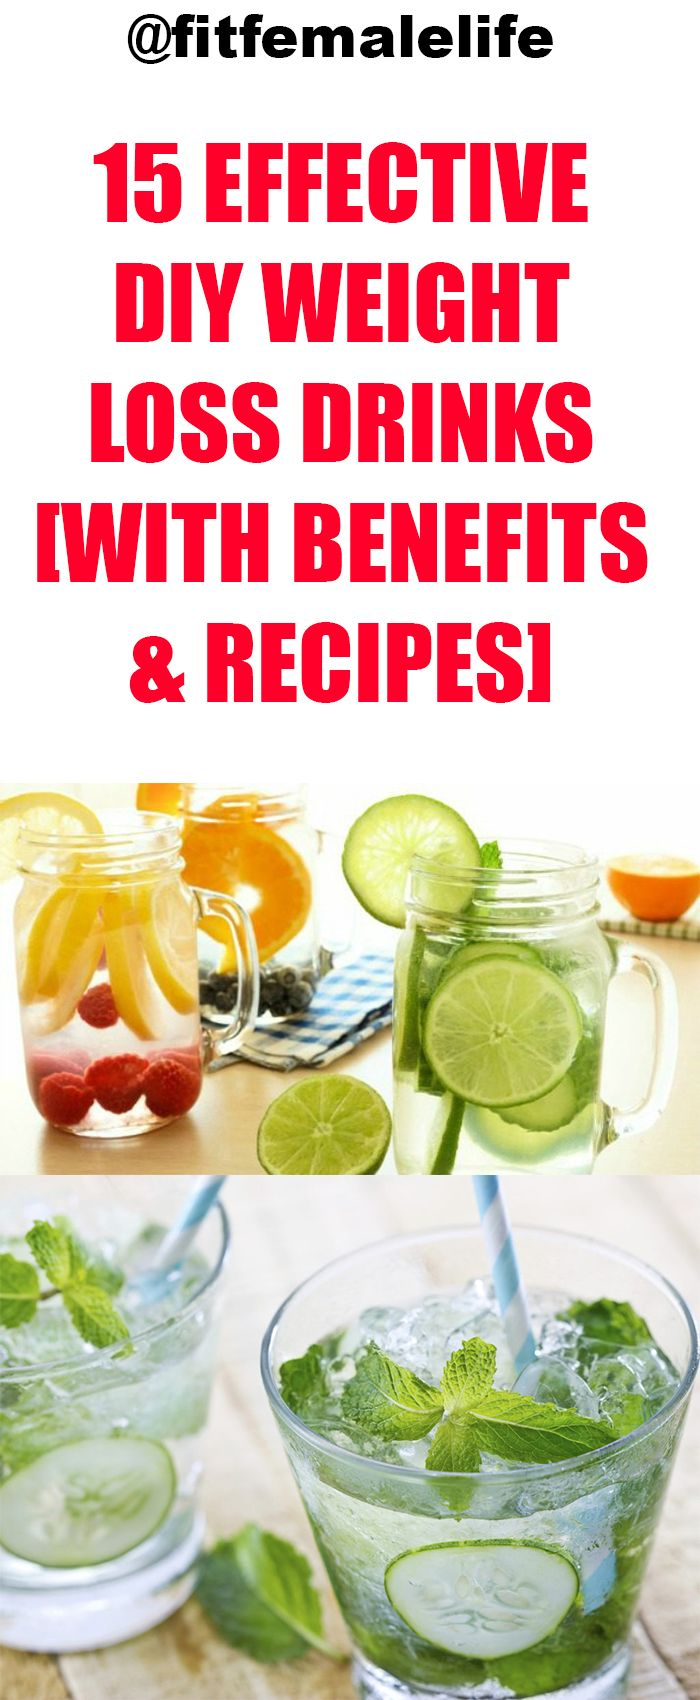 Cocktails for weight loss at home: recipes, reviews 55